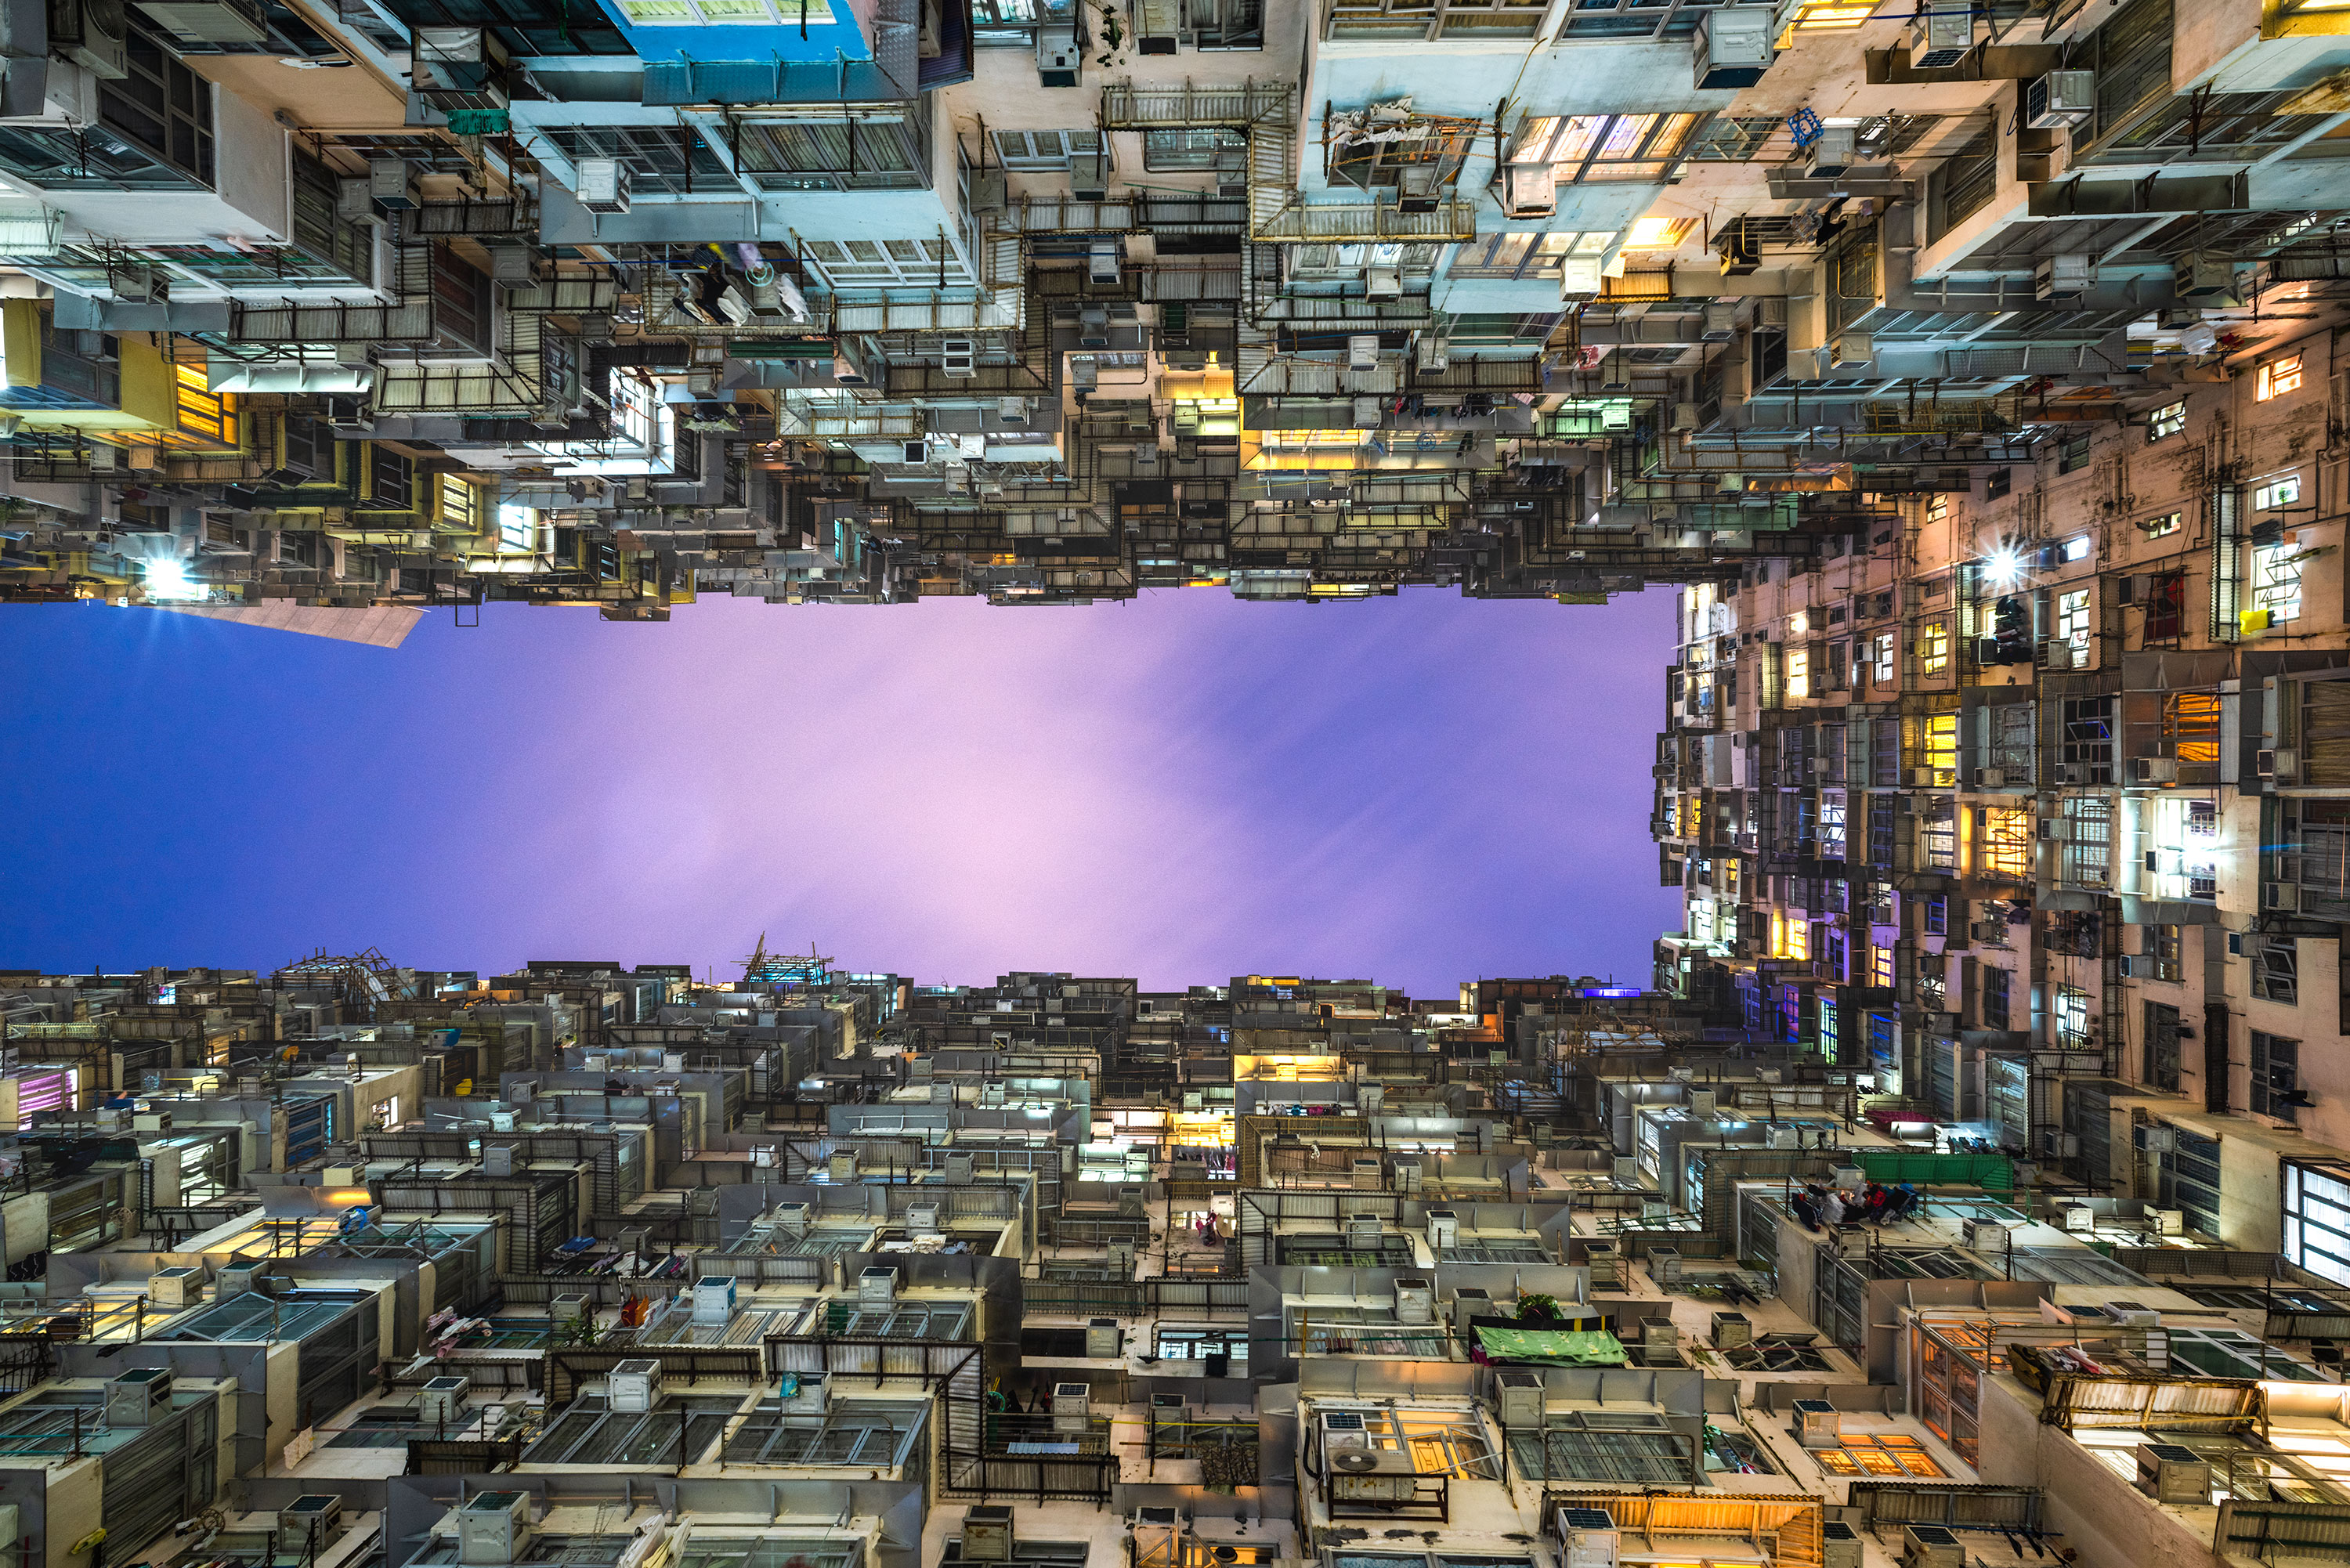 Night photography of the monster building in Hong Kong taken by Jennifer Esseiva.